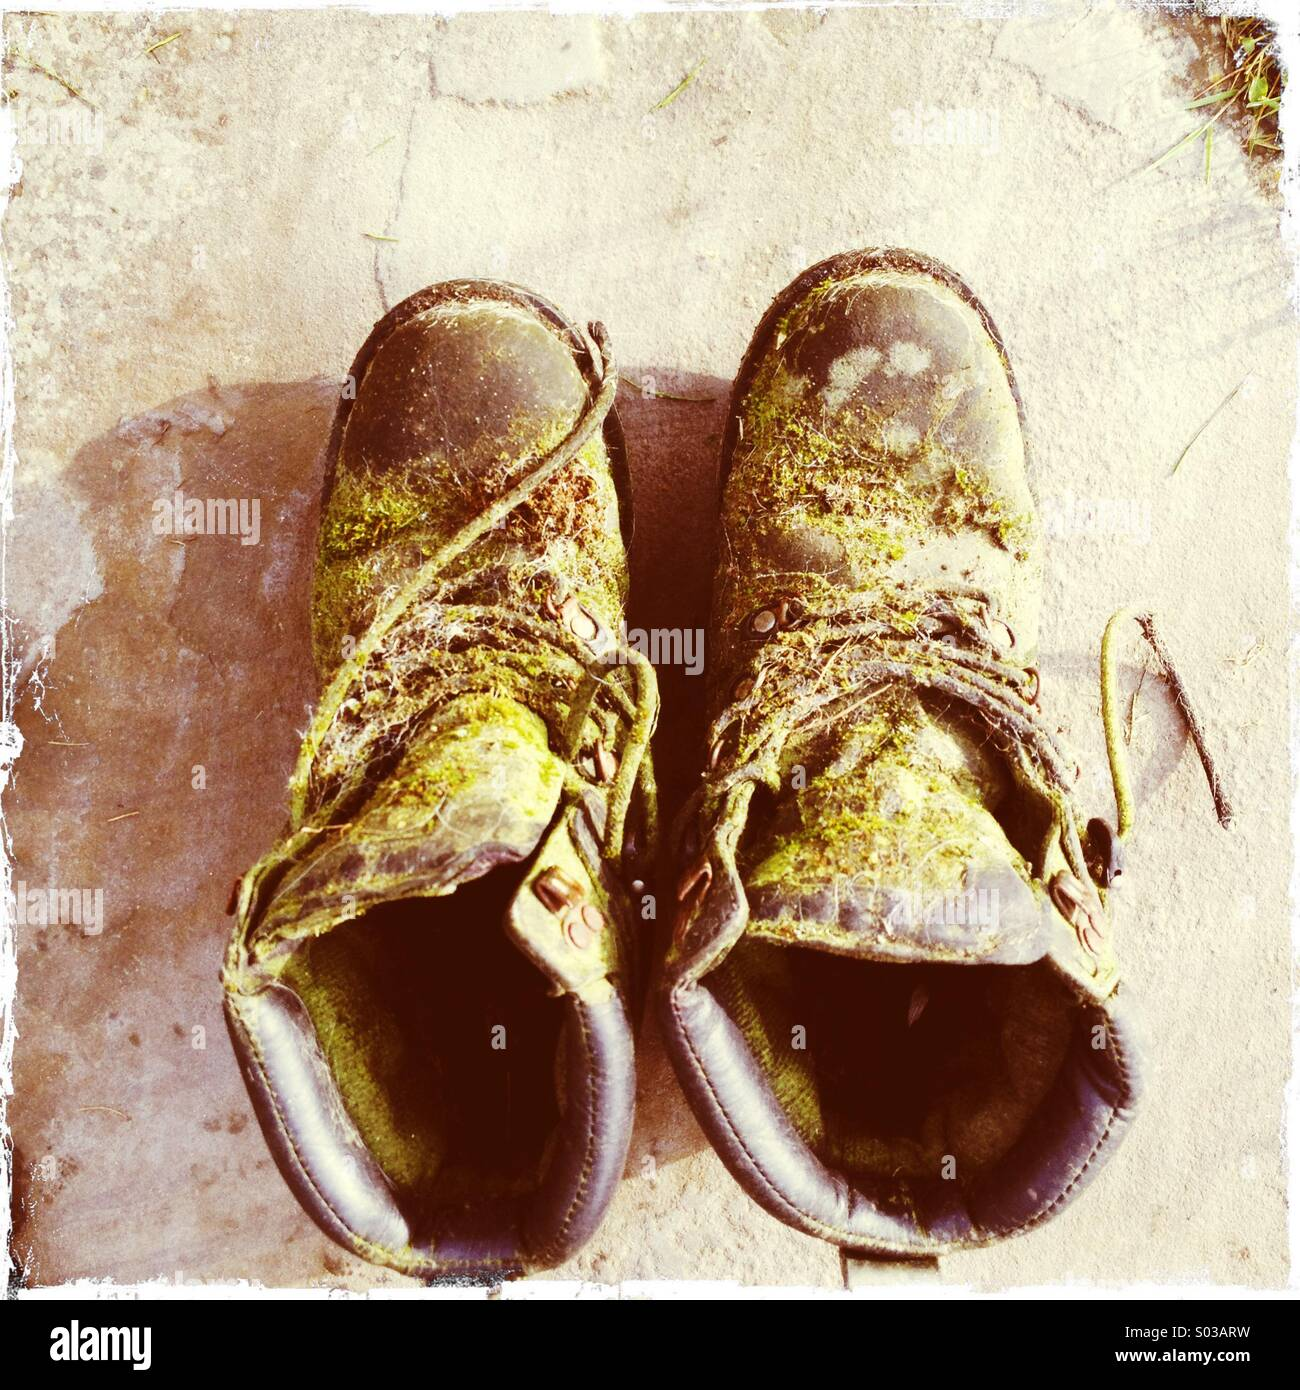 Rotten old moss and mould covered boots - Stock Image